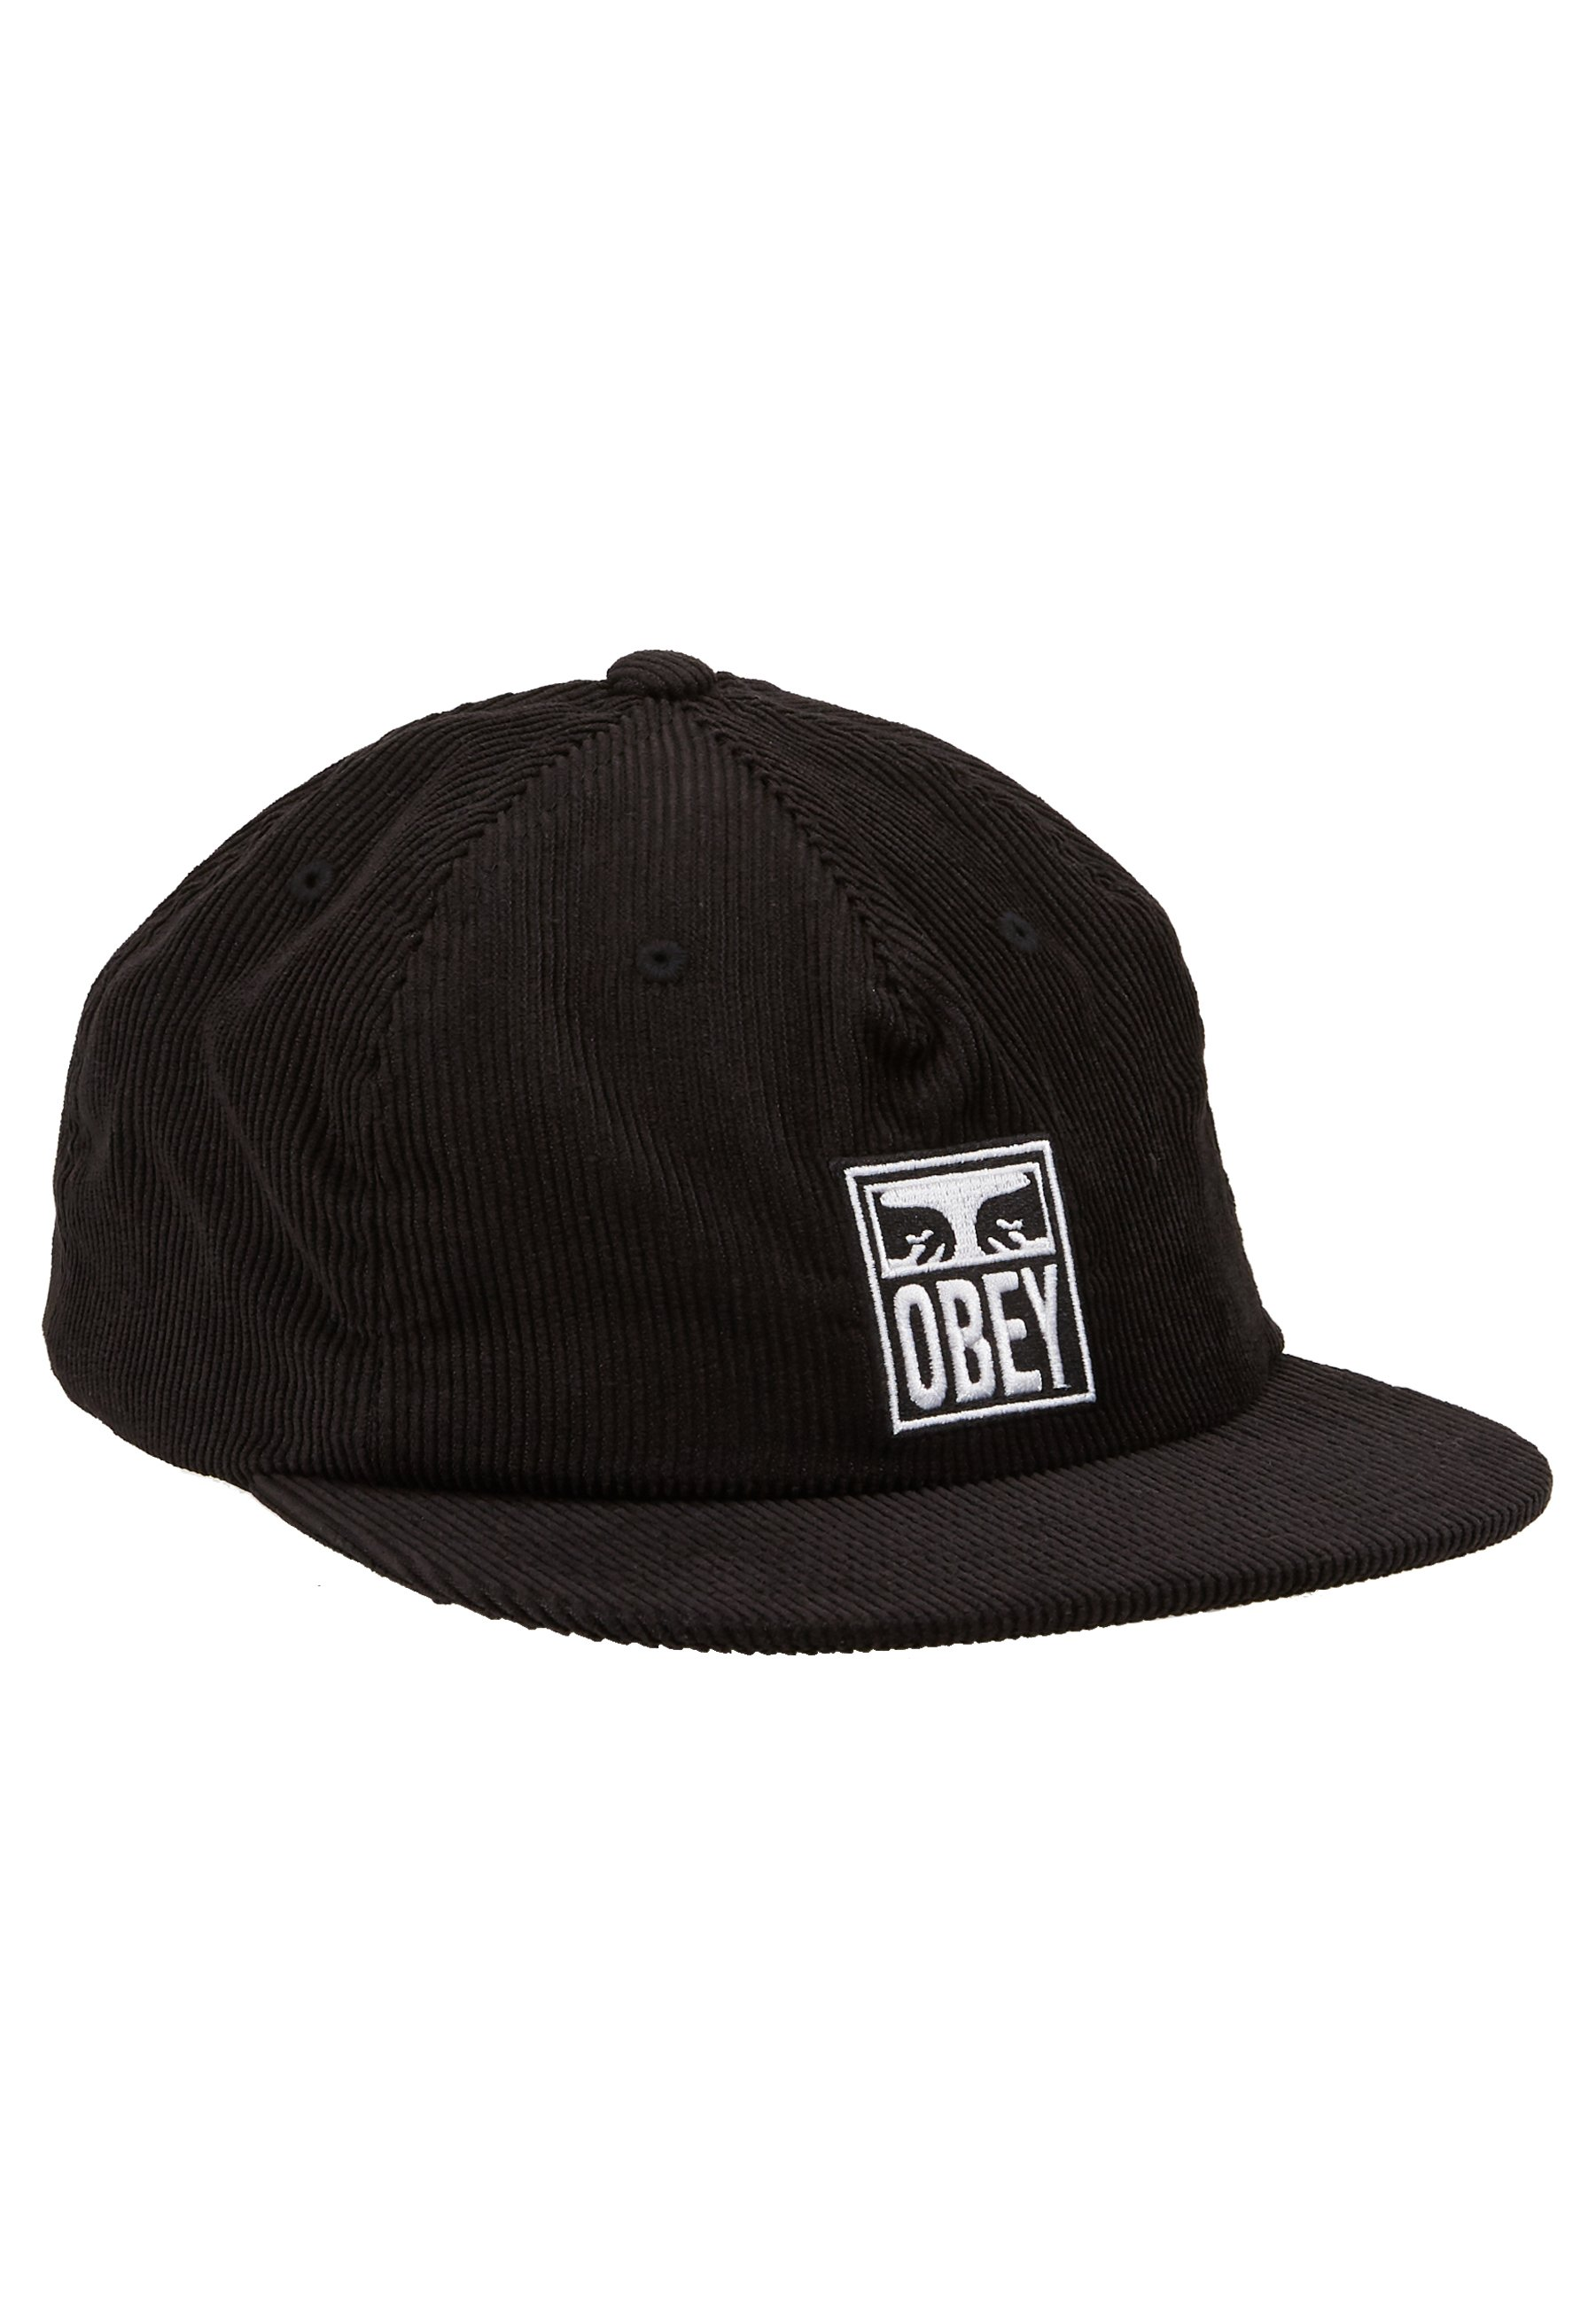 Obey Clothing Vanish Strapback - Cap Black/schwarz